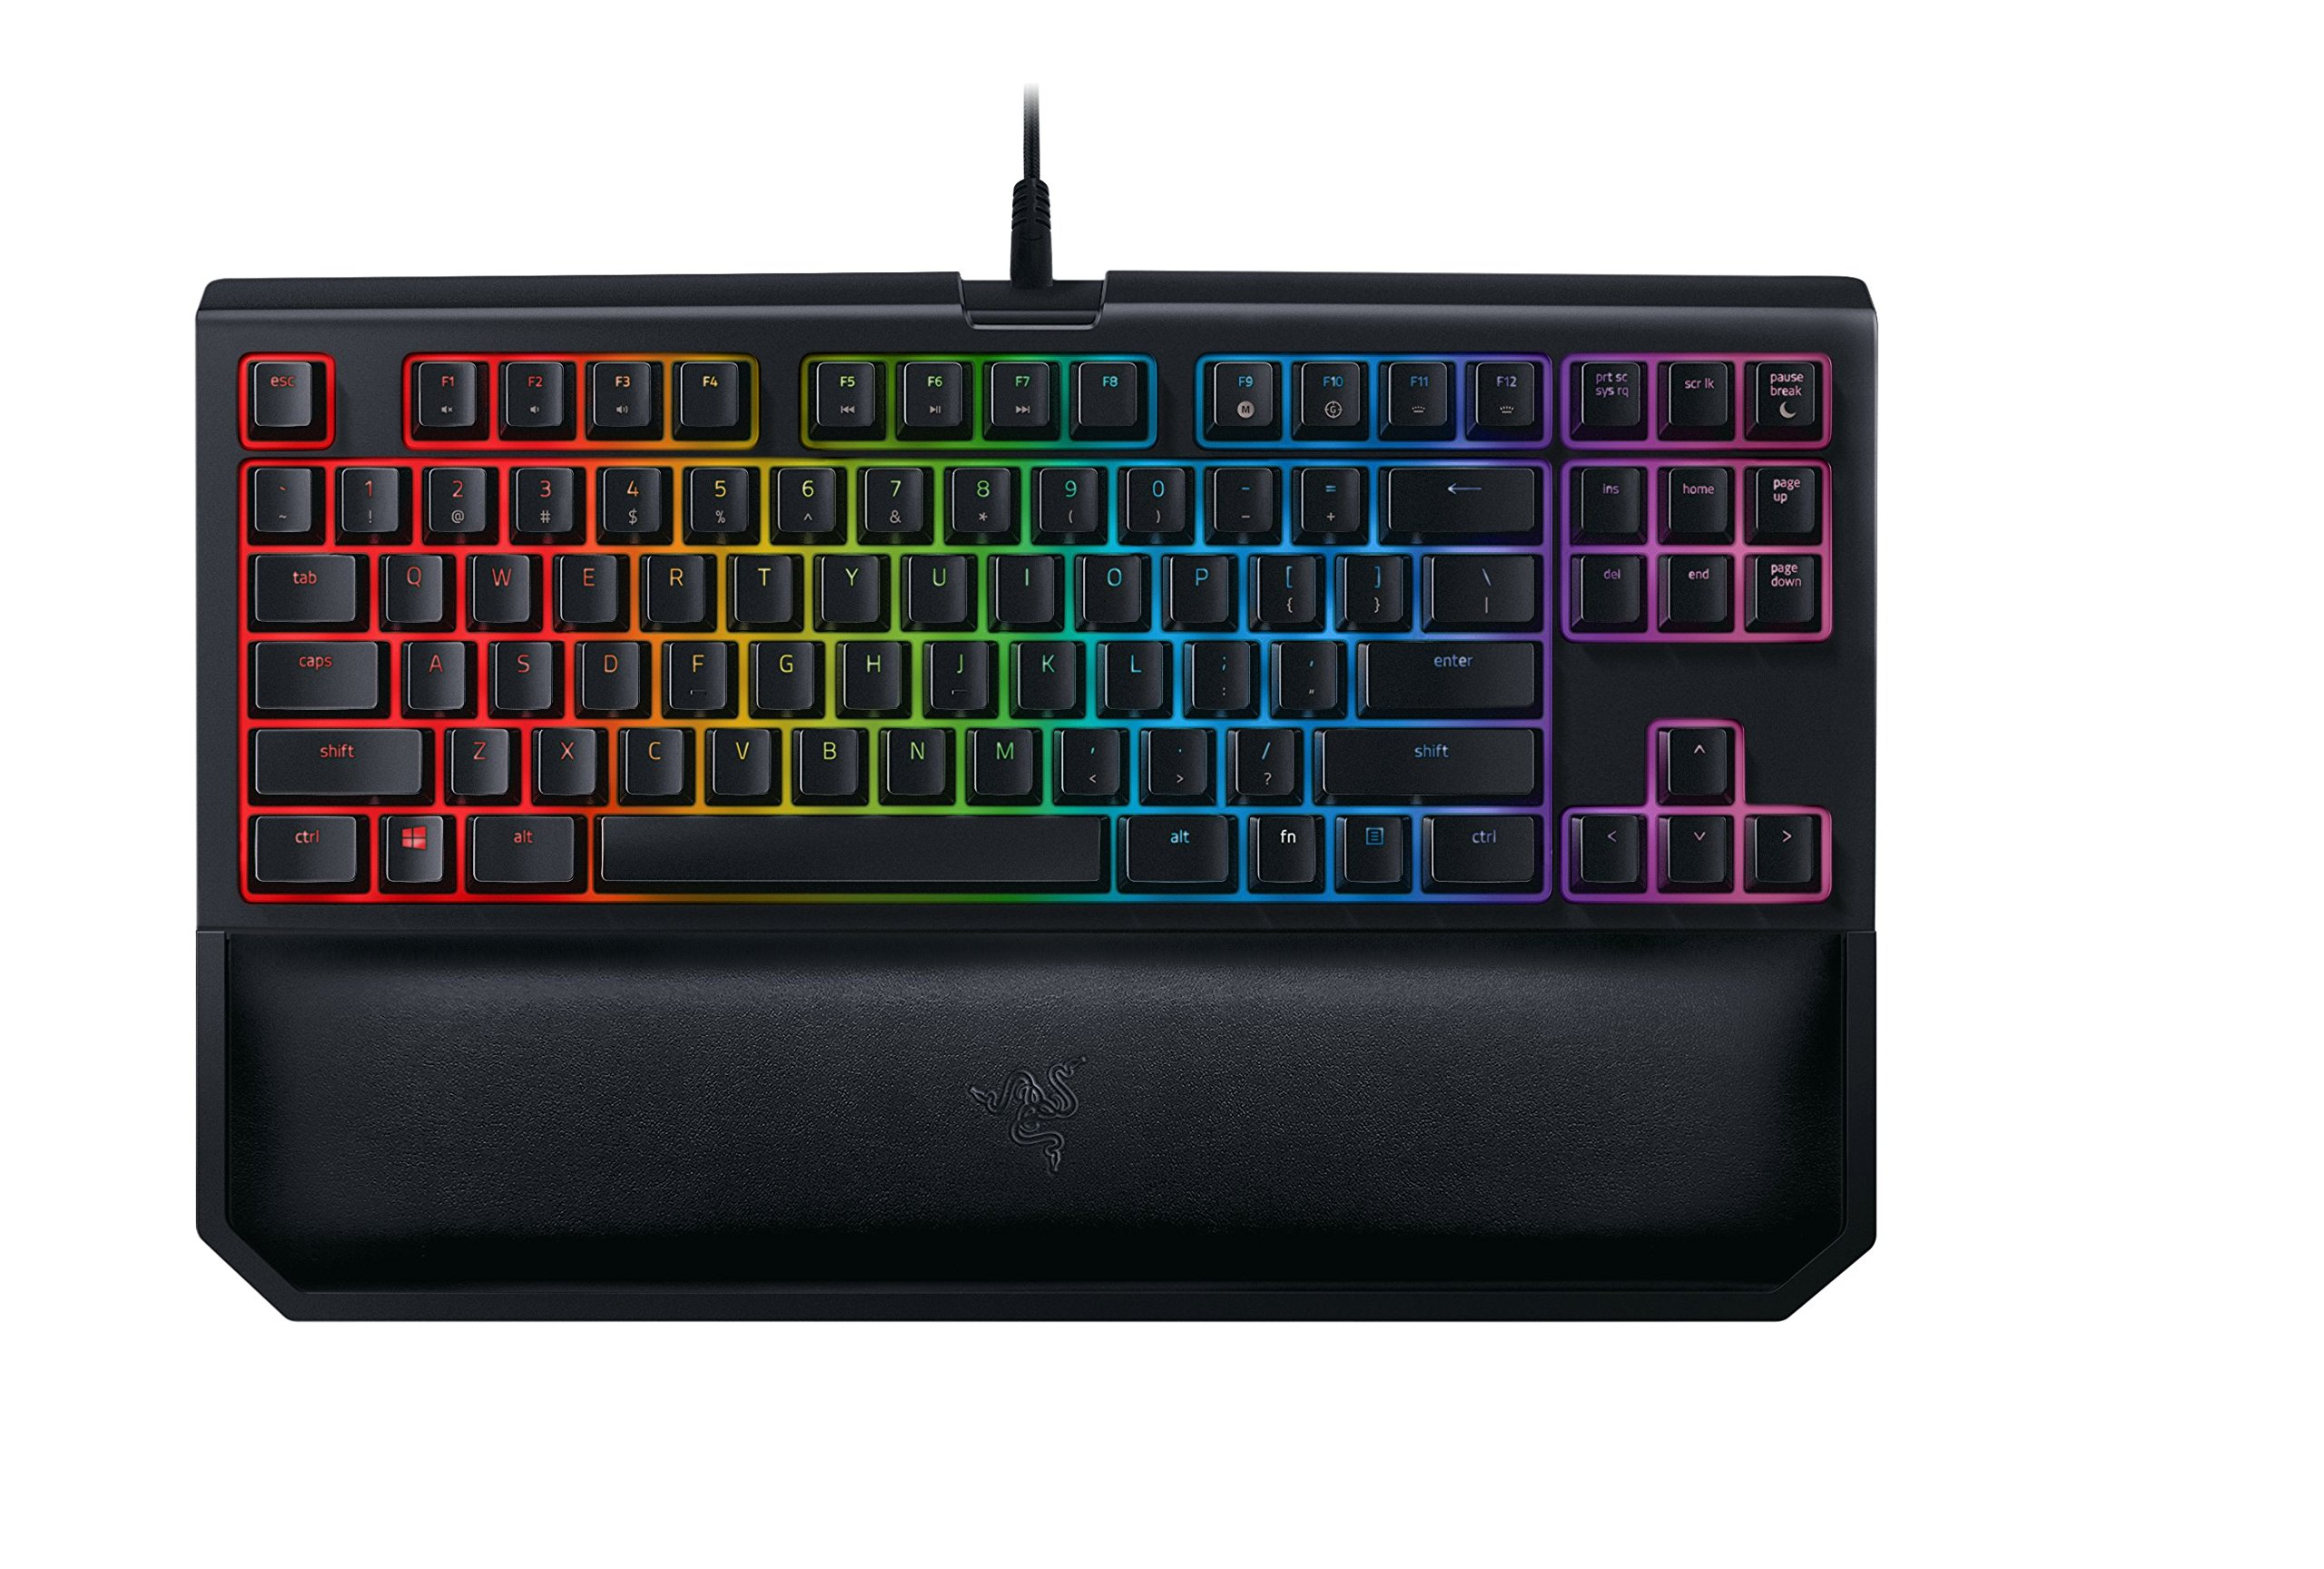 Razer BlackWidow TE Chroma v2 Mechanical Gaming Keyboard: Green Key Switches - Tactile & Clicky - Chroma RGB Lighting - Magnetic Wrist Rest - Programmable Macro Functionality - Classic Black